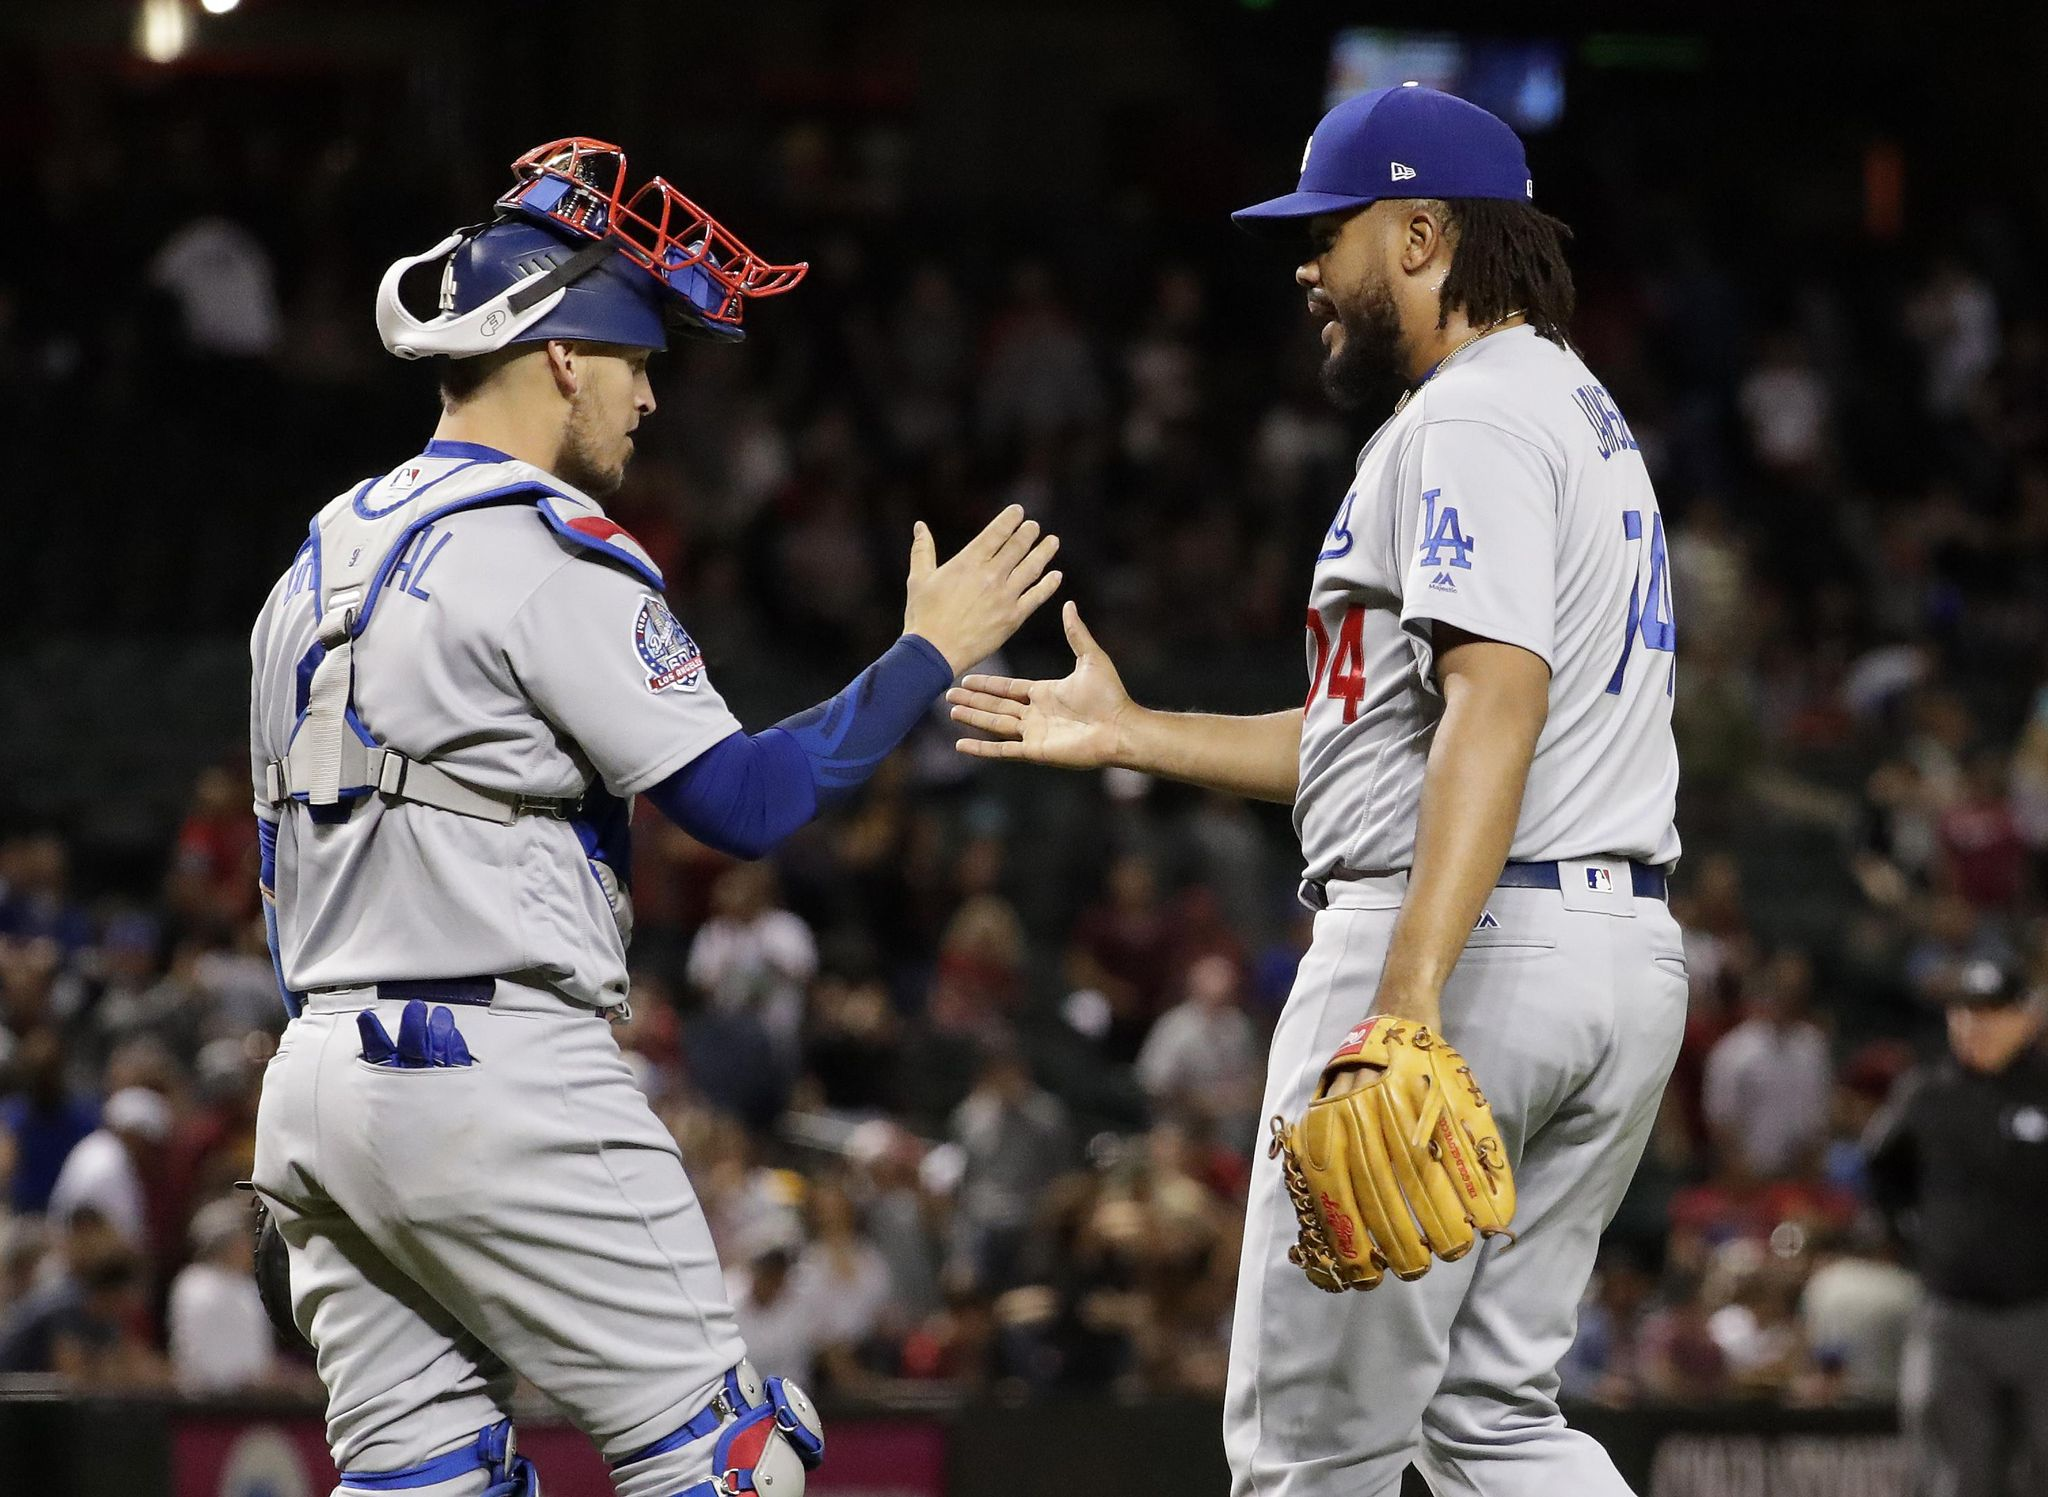 Dodgers_diamondbacks_baseball_11259_s2048x1497